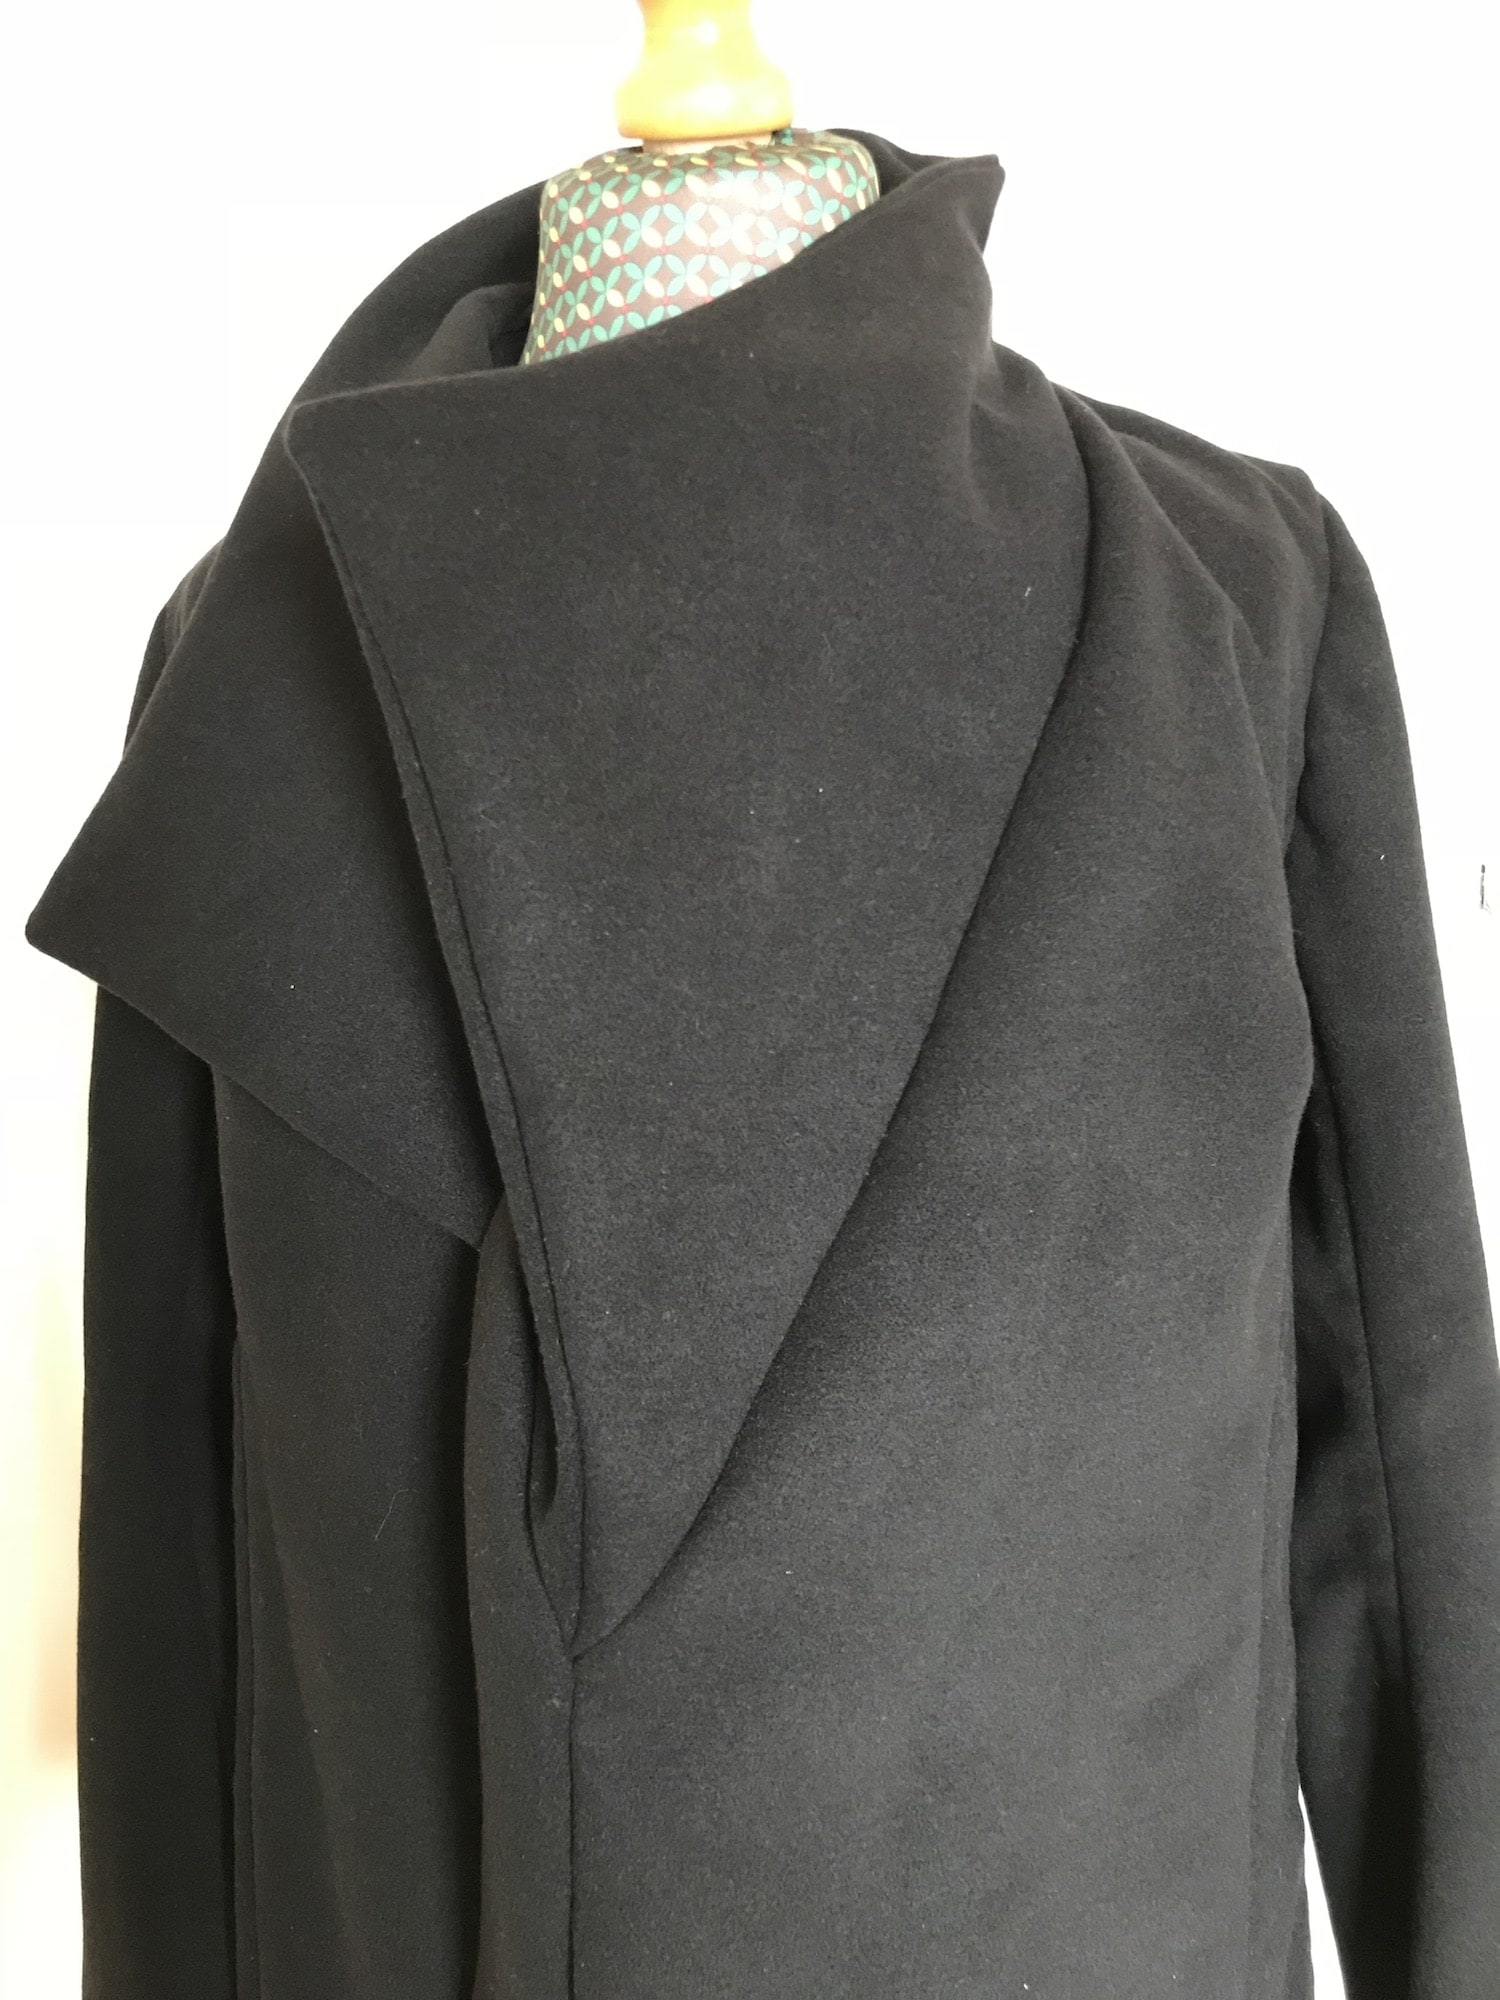 Self drafted coat outer high neckline.jpg